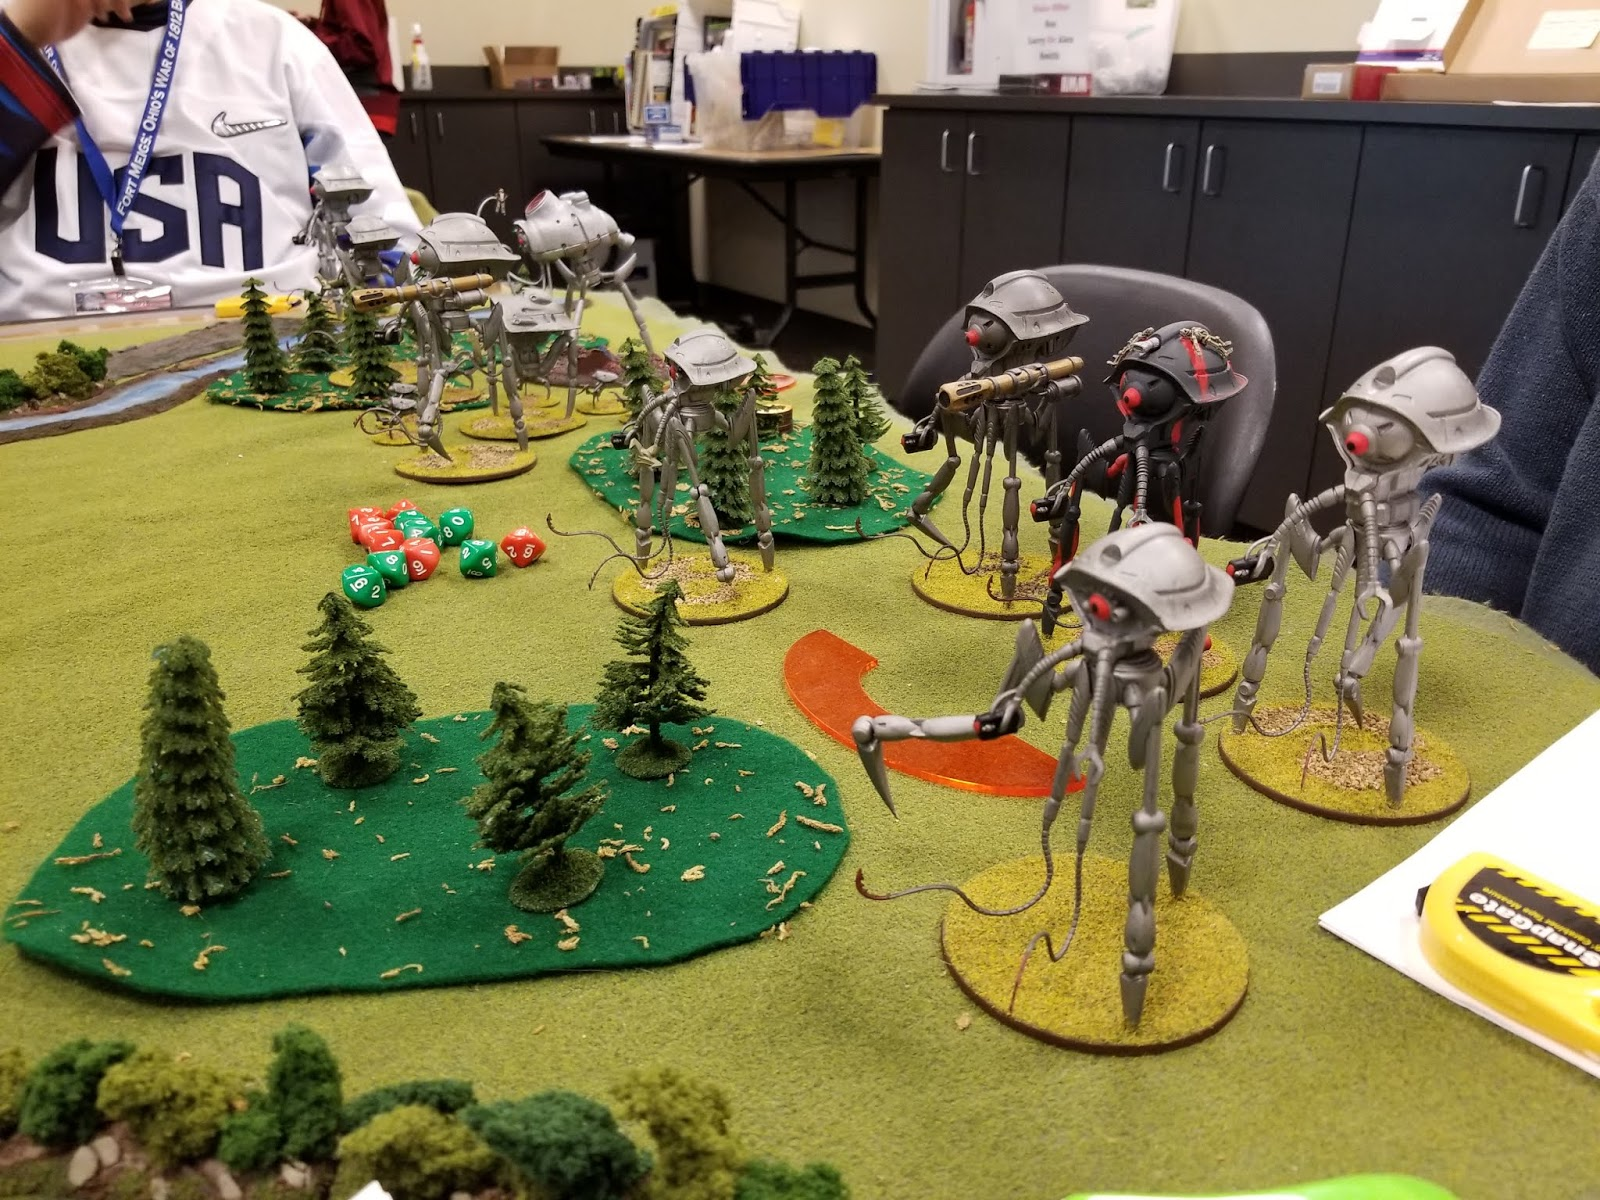 """Aqmf tmp] """"aqmf at ft. meigs games day"""" topic"""